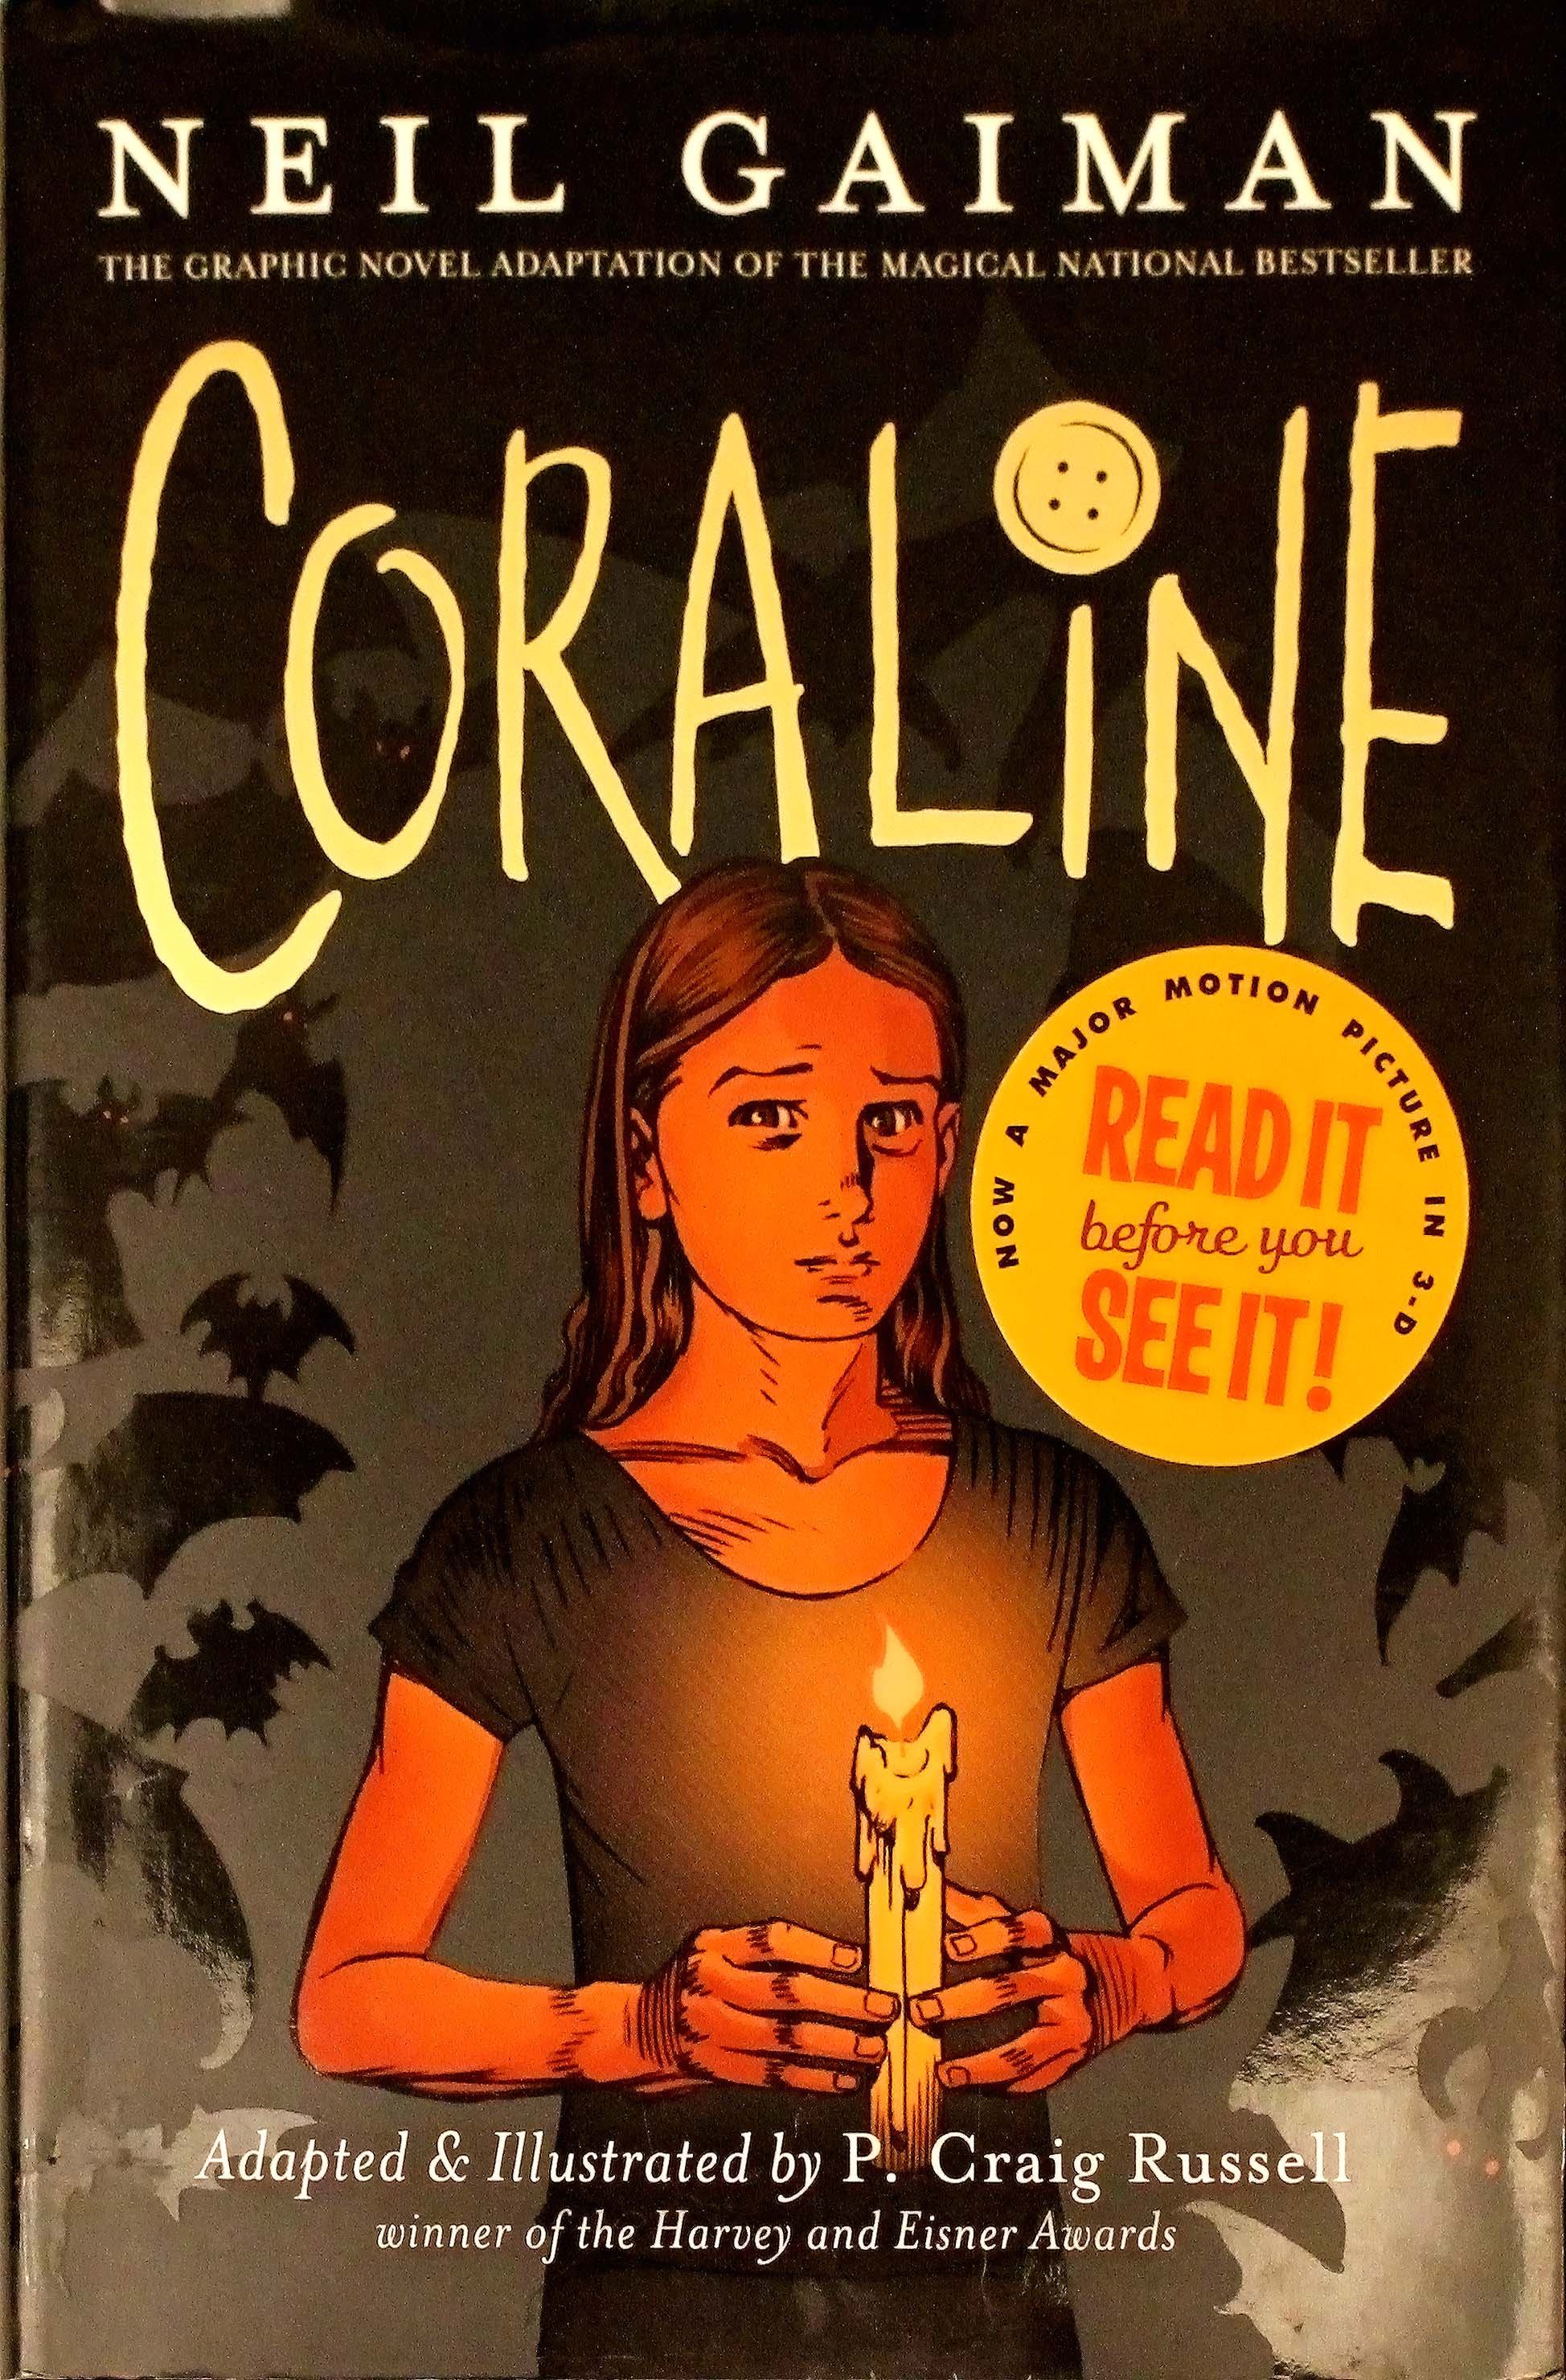 Coraline The Graphic Novel Adaptation By Neil Gaiman Author P Craig Russell Illustrator Considerthelilies Org